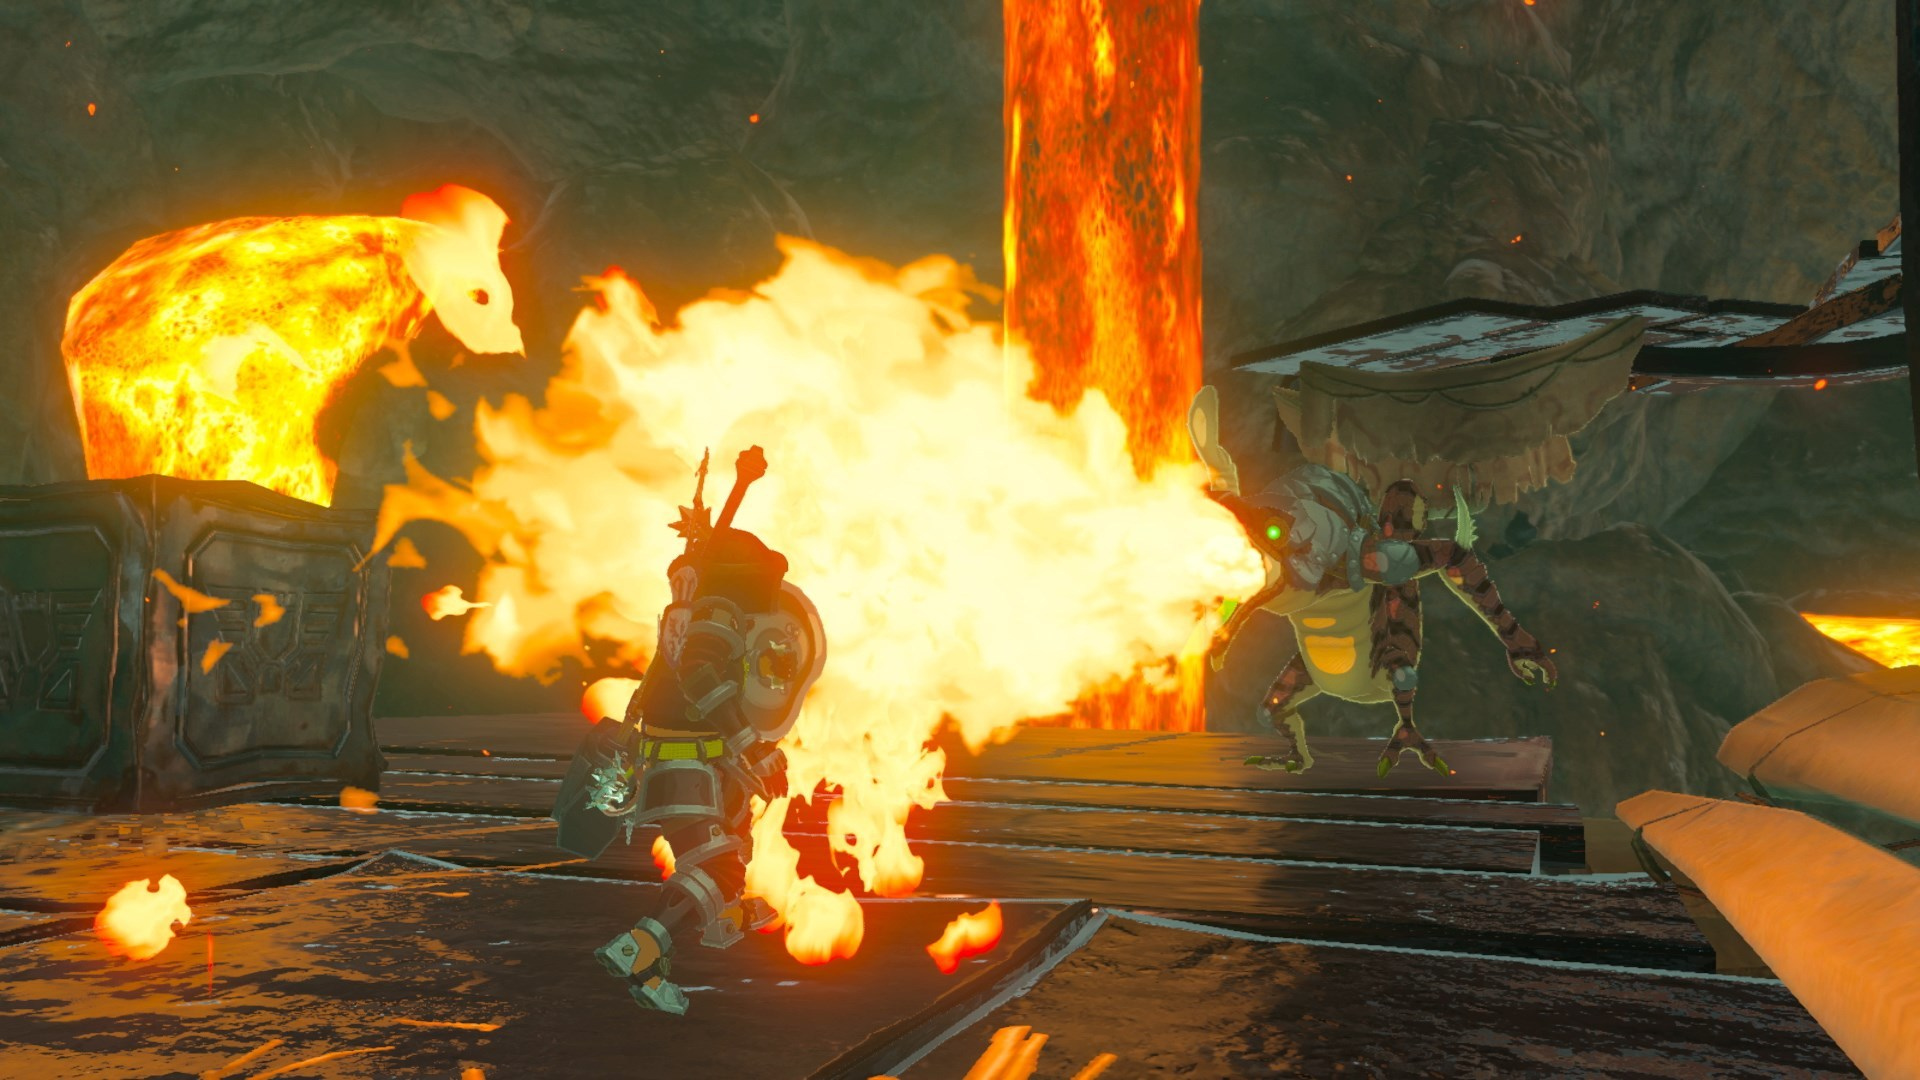 Legend of zelda breath of the wild all elixir recipes cooking guide legend of zelda breath of the wild introduces a new generation of zelda fans to the wonders of cooking but recipes arent just for making delicious forumfinder Choice Image